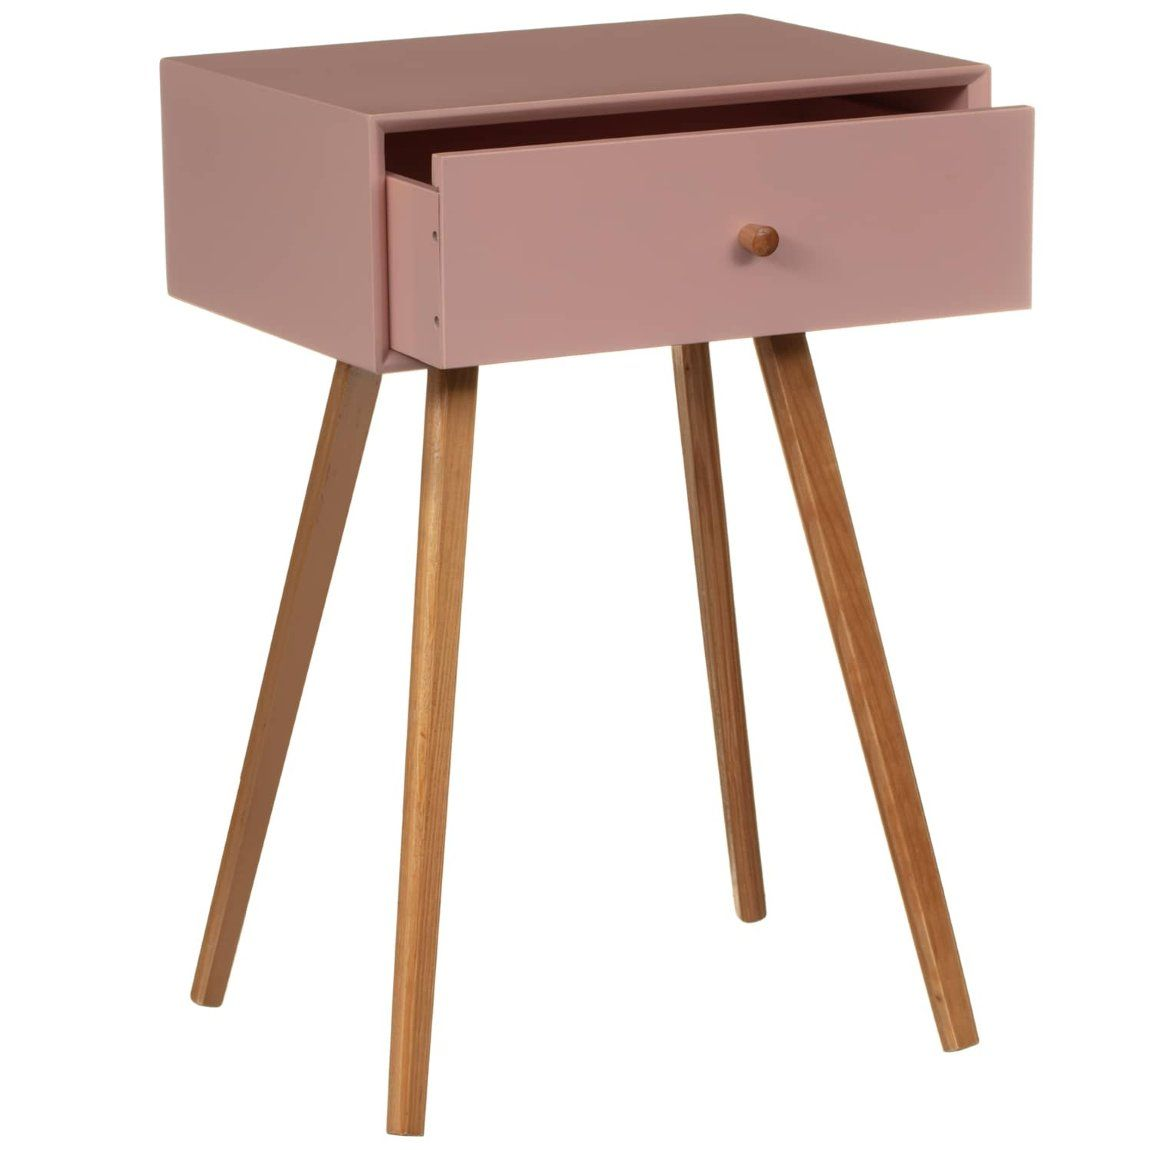 Bjorn Bedside Table Blush Bedroom Furniture B M In 2020 Bedroom Decor Everyday Essentials Products Bedside Table